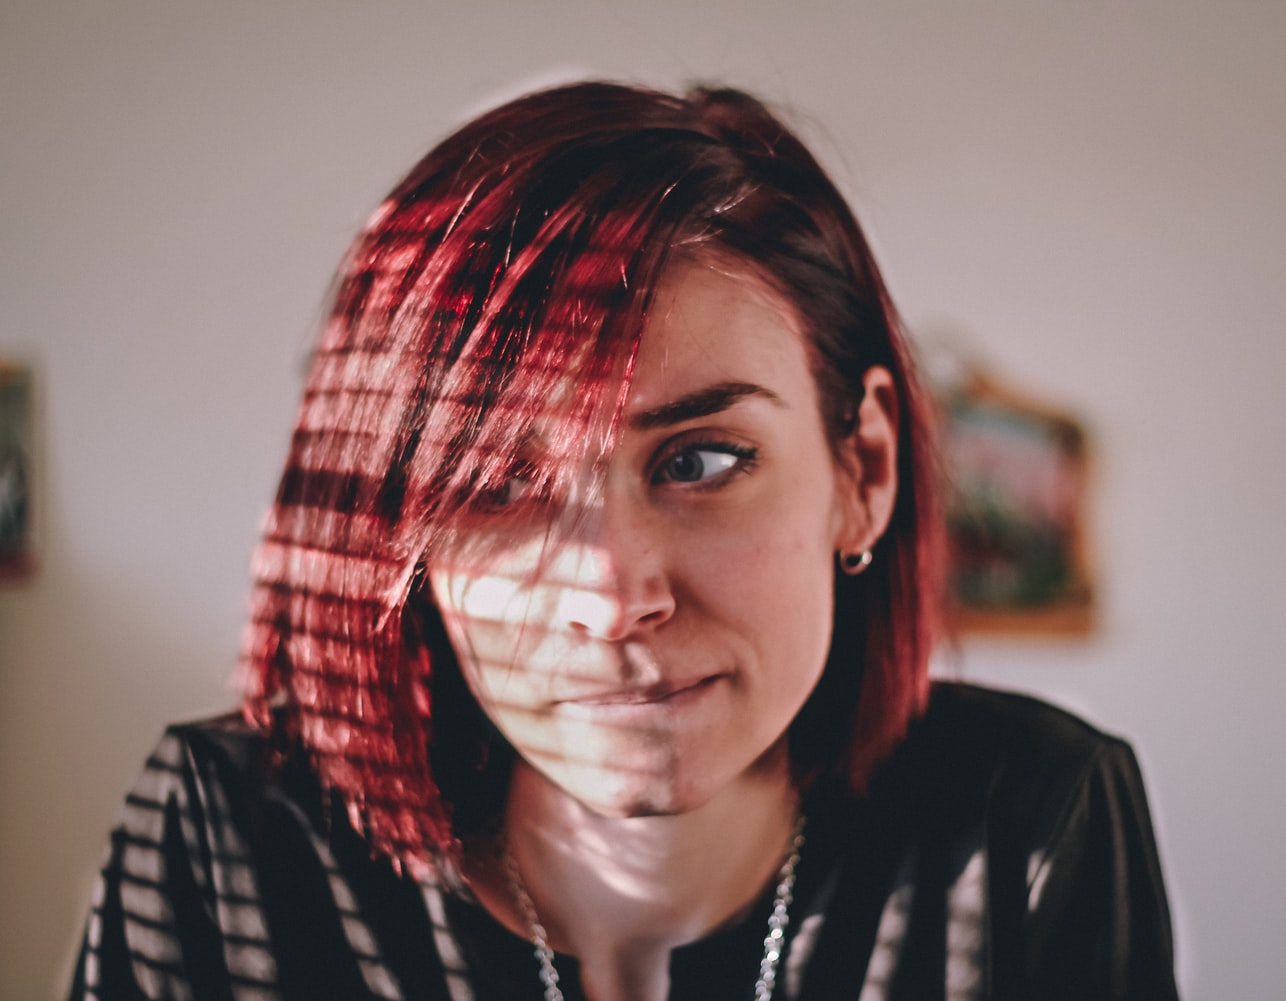 Light from window reflecting on red-haired woman biting lip and ruminating